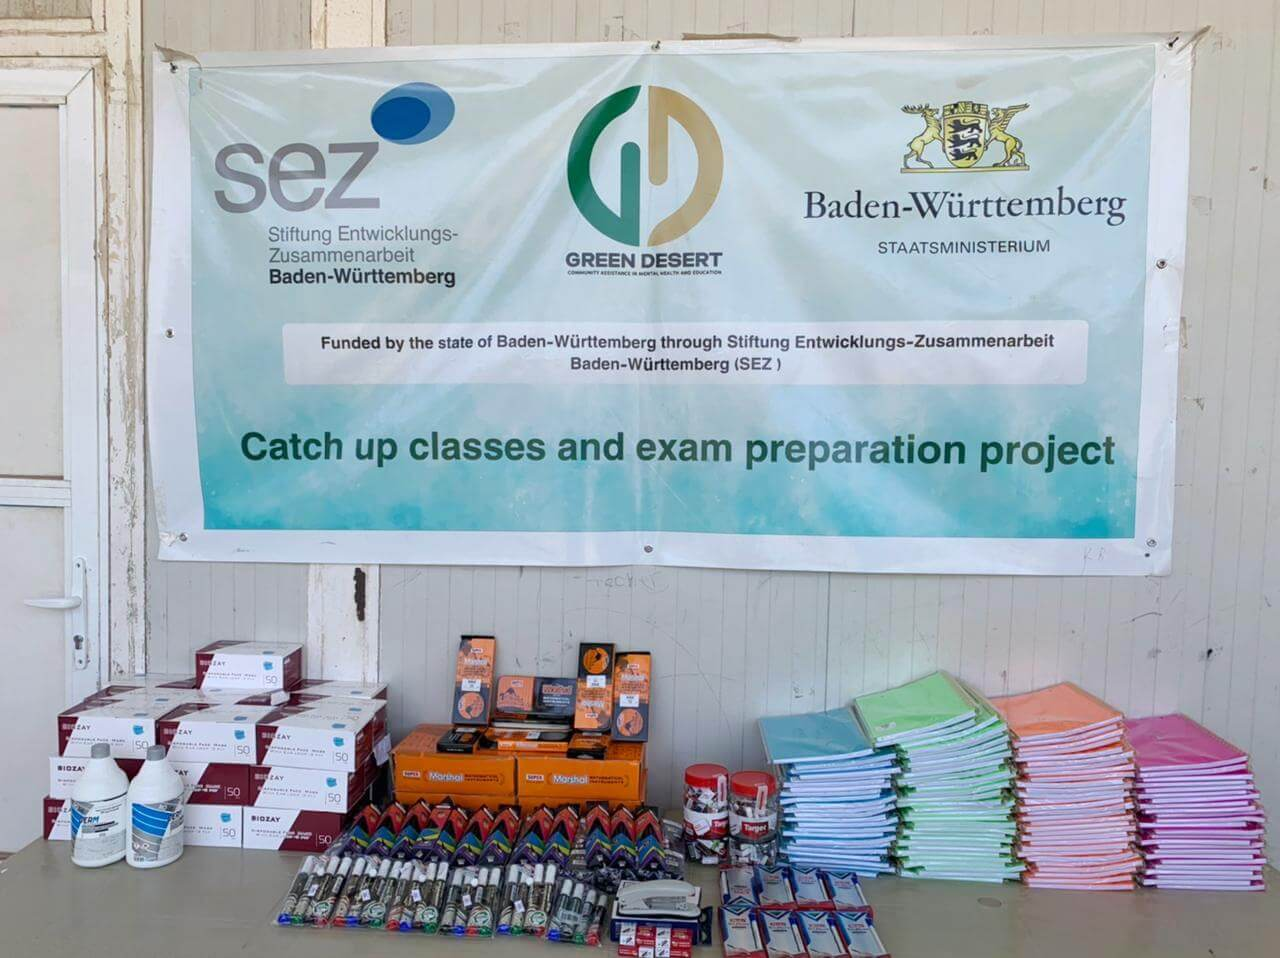 Providing school stationery for 12th-grade students